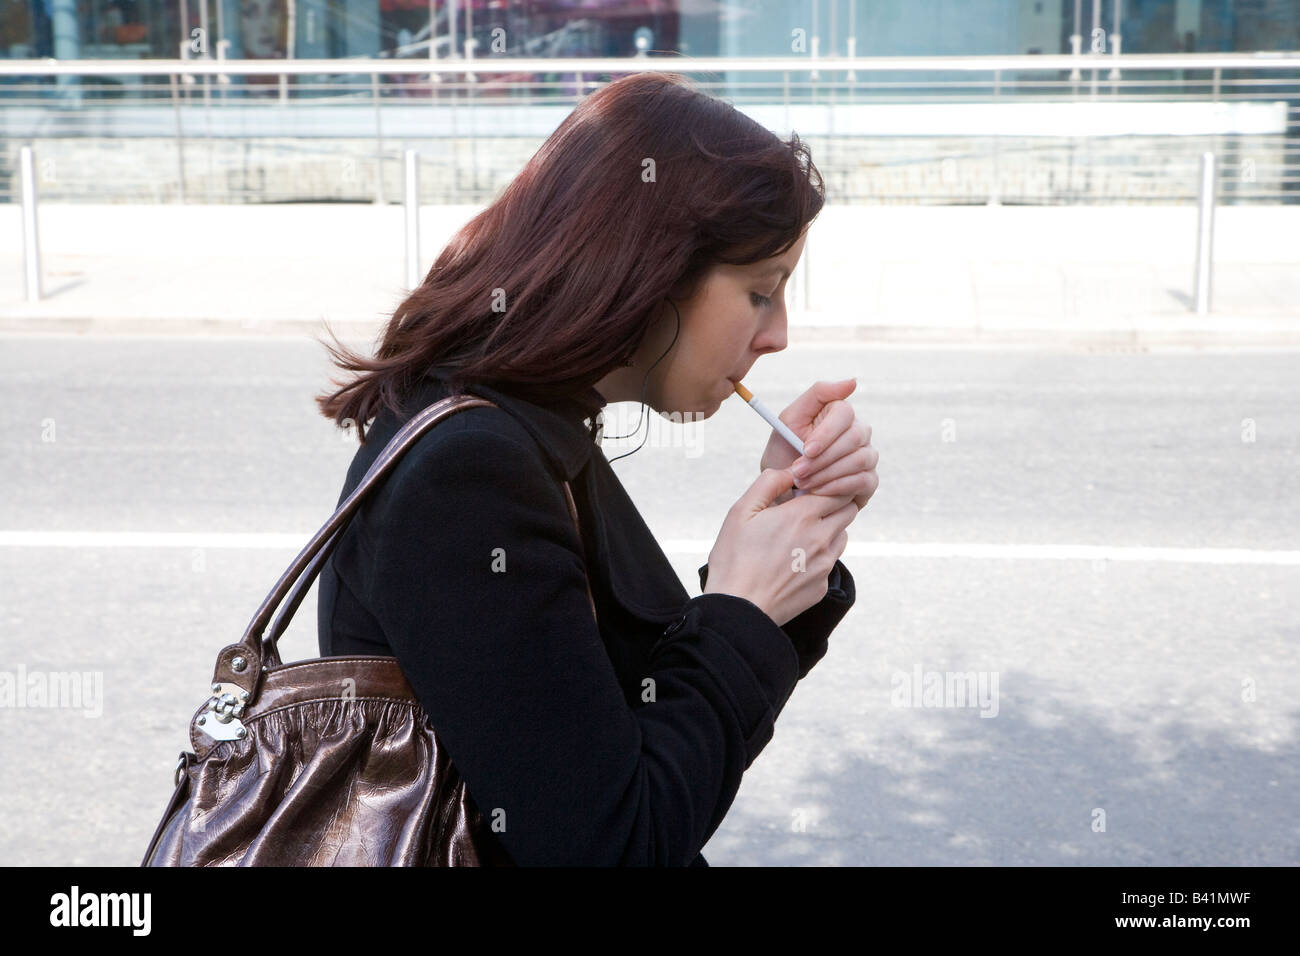 Smoking Girl Lighting Stock Photos & Smoking Girl Lighting Stock Images - Alamy